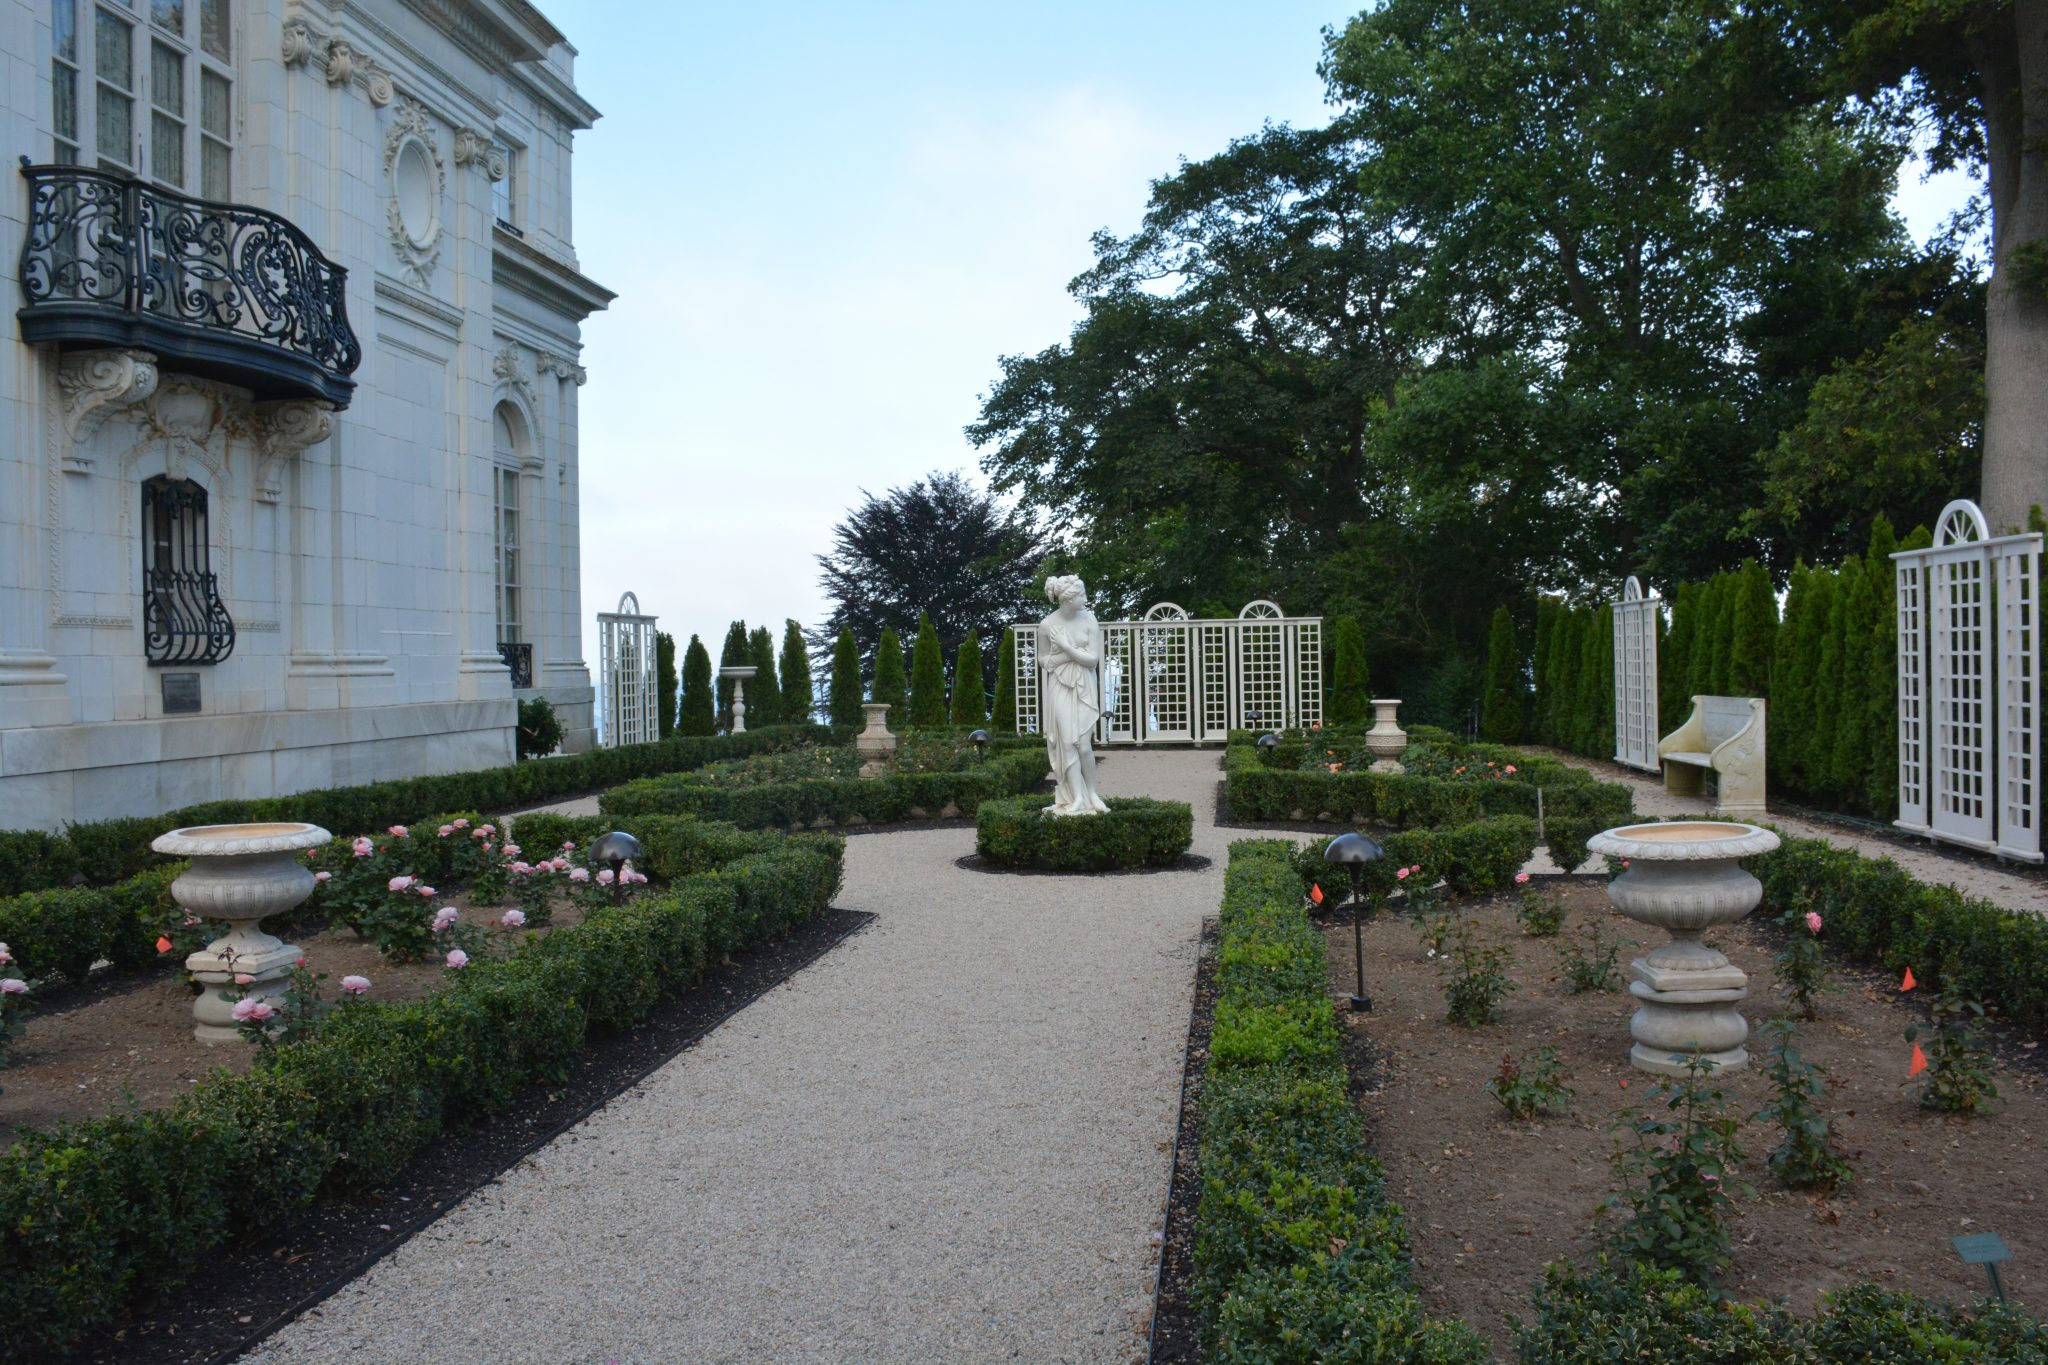 RESTORATION OF THE Rosecliff Rose Garden Has Been Completed By The  Preservation Society Of Newport County. / COURTESY OF PRESERVATION SOCIETY  OF NEWPORT ...